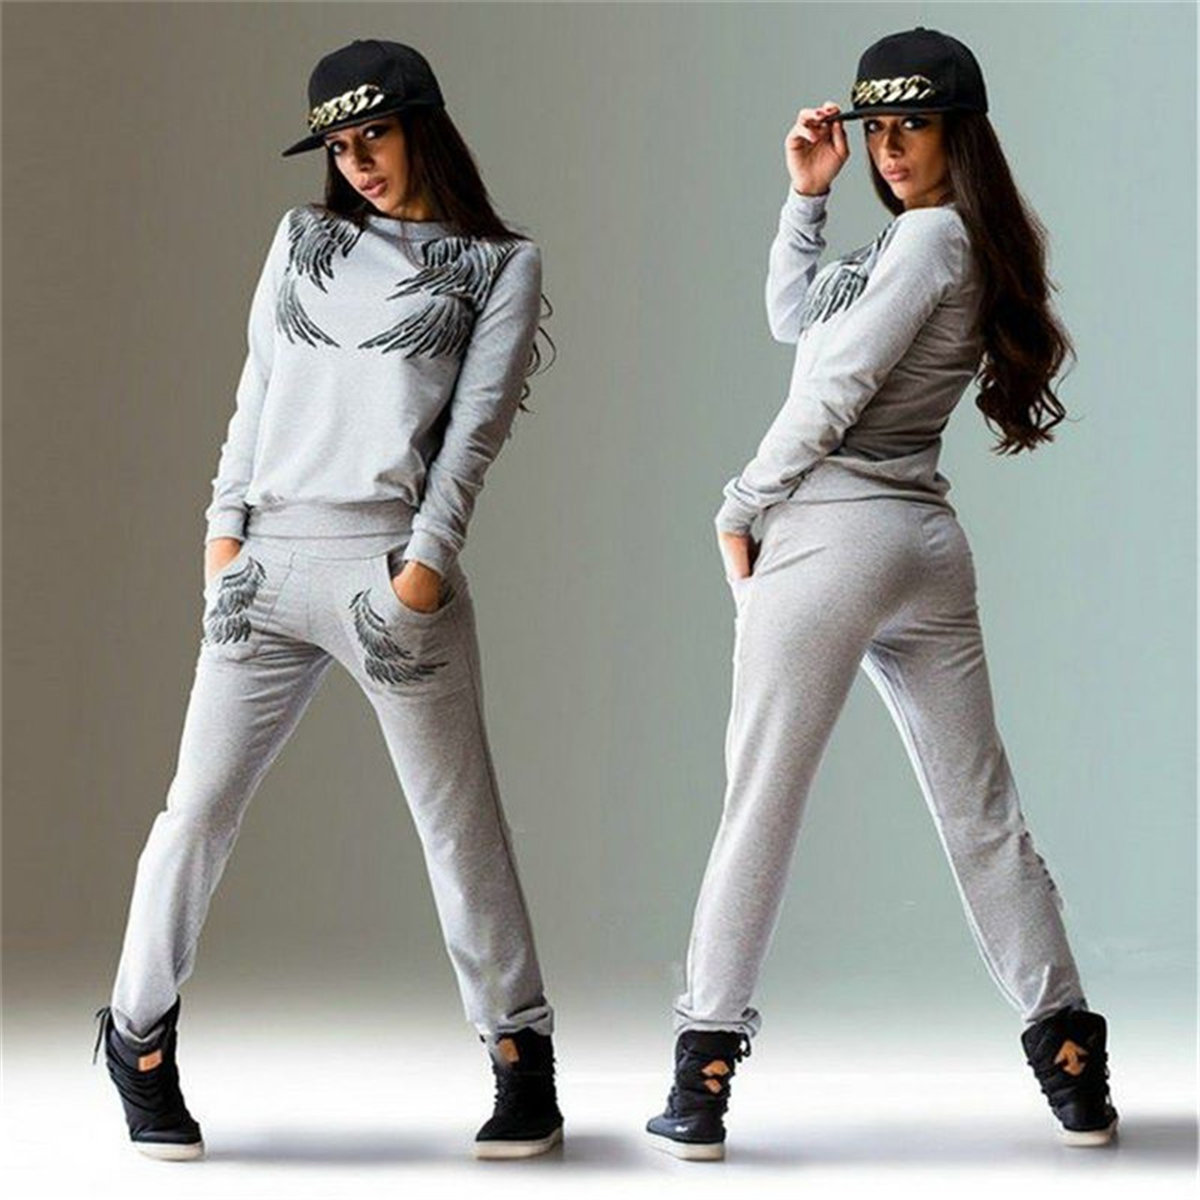 Gray Warm Cashmere 2 Piece Set Tracksuit For Women Outfits Co-ord Matching Top And Pants Sportwear Winter Autumn Clothing